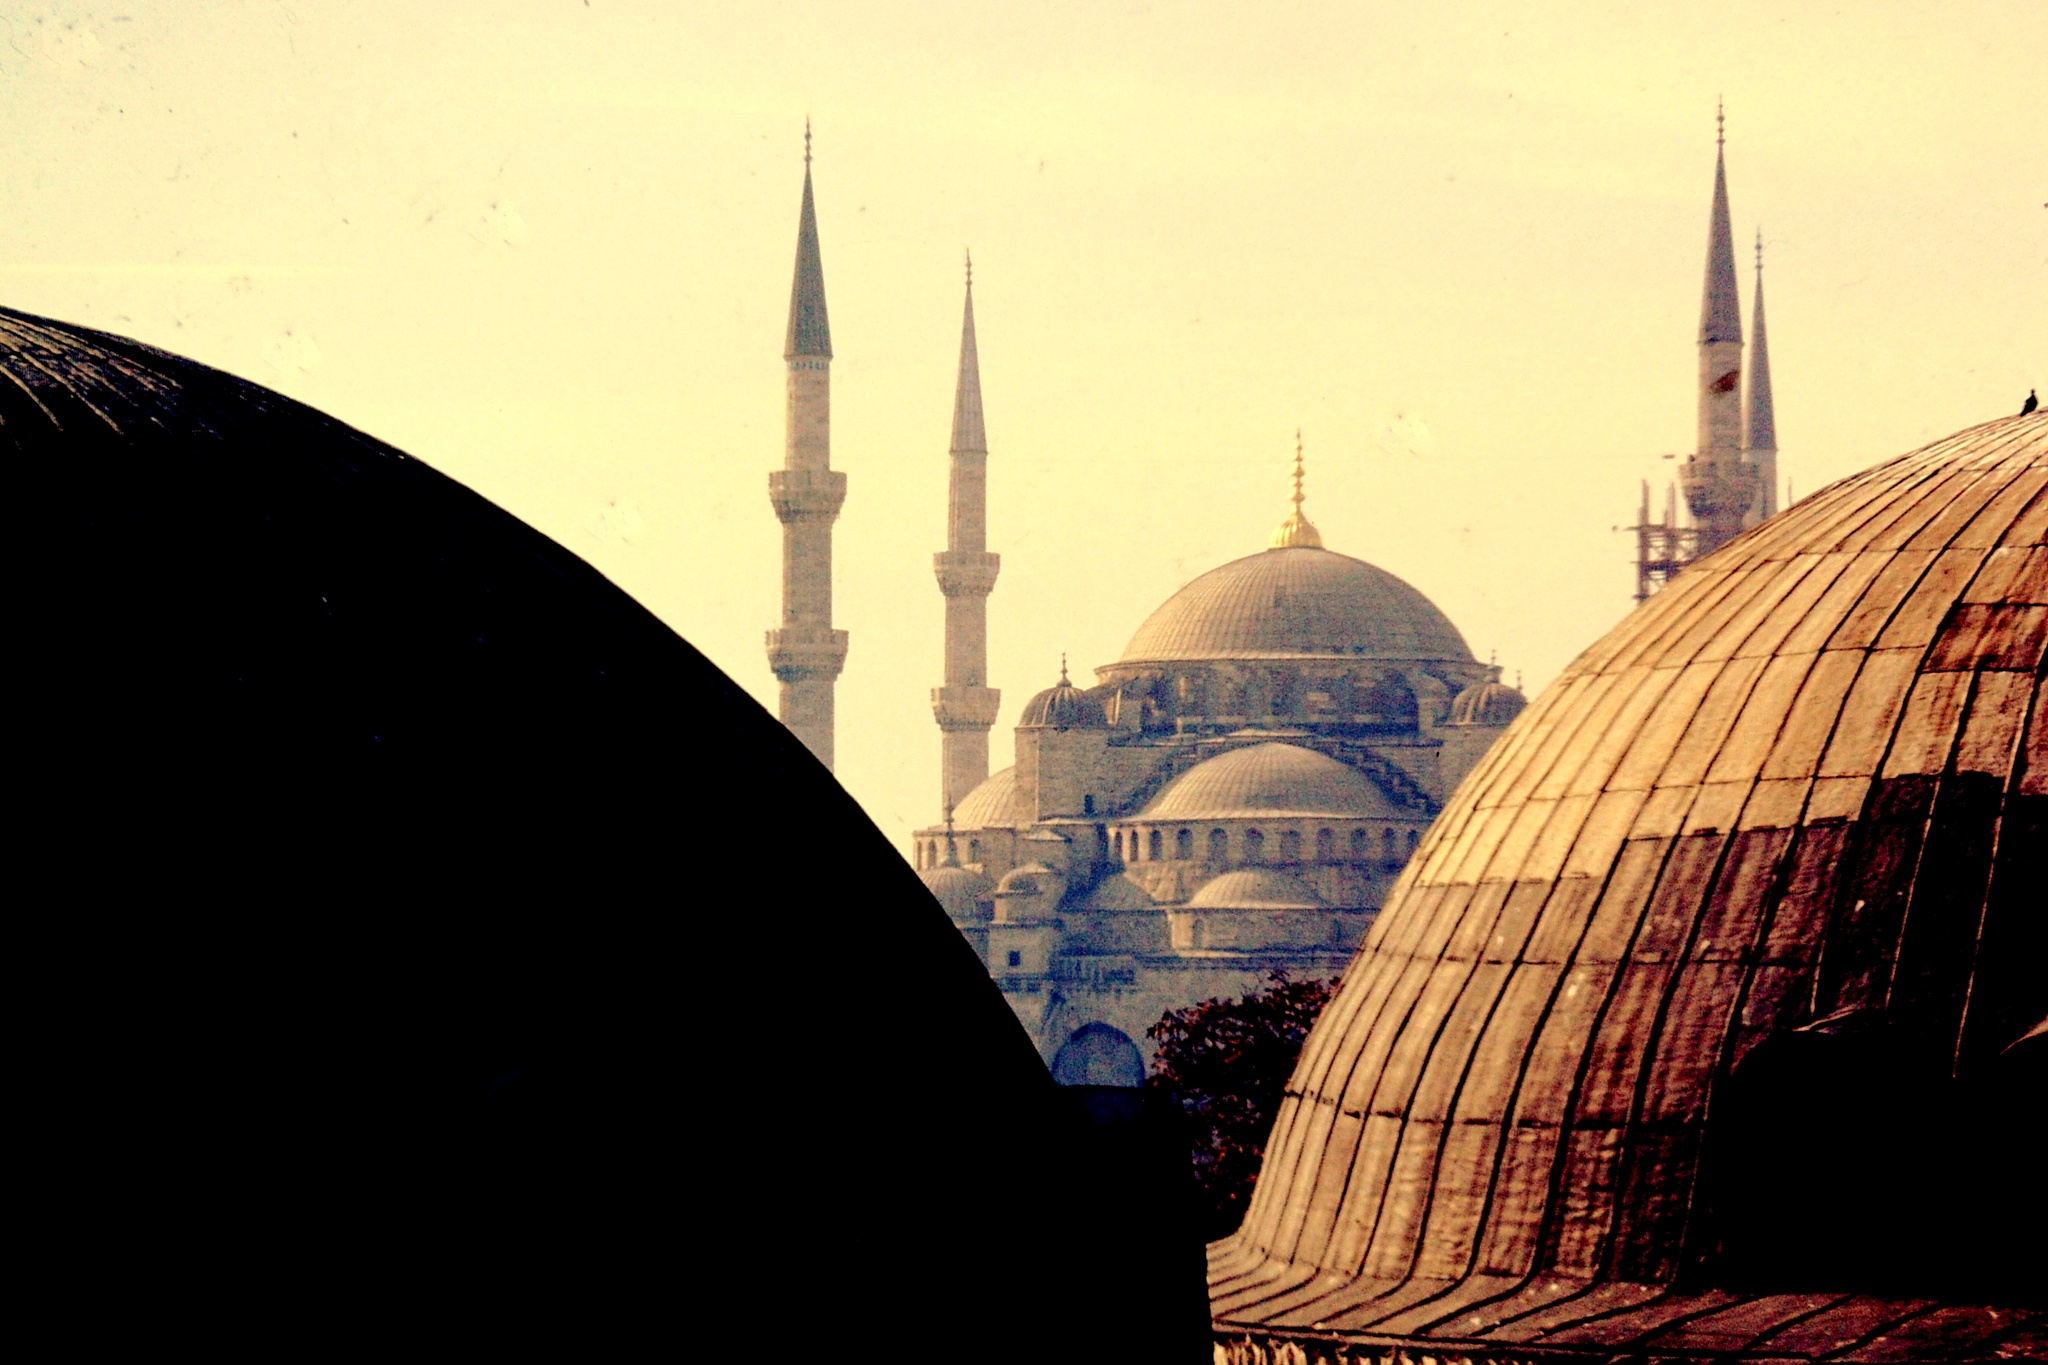 ISTANBUL, CITY OF DOMES AND MINARETS by Akin Saner